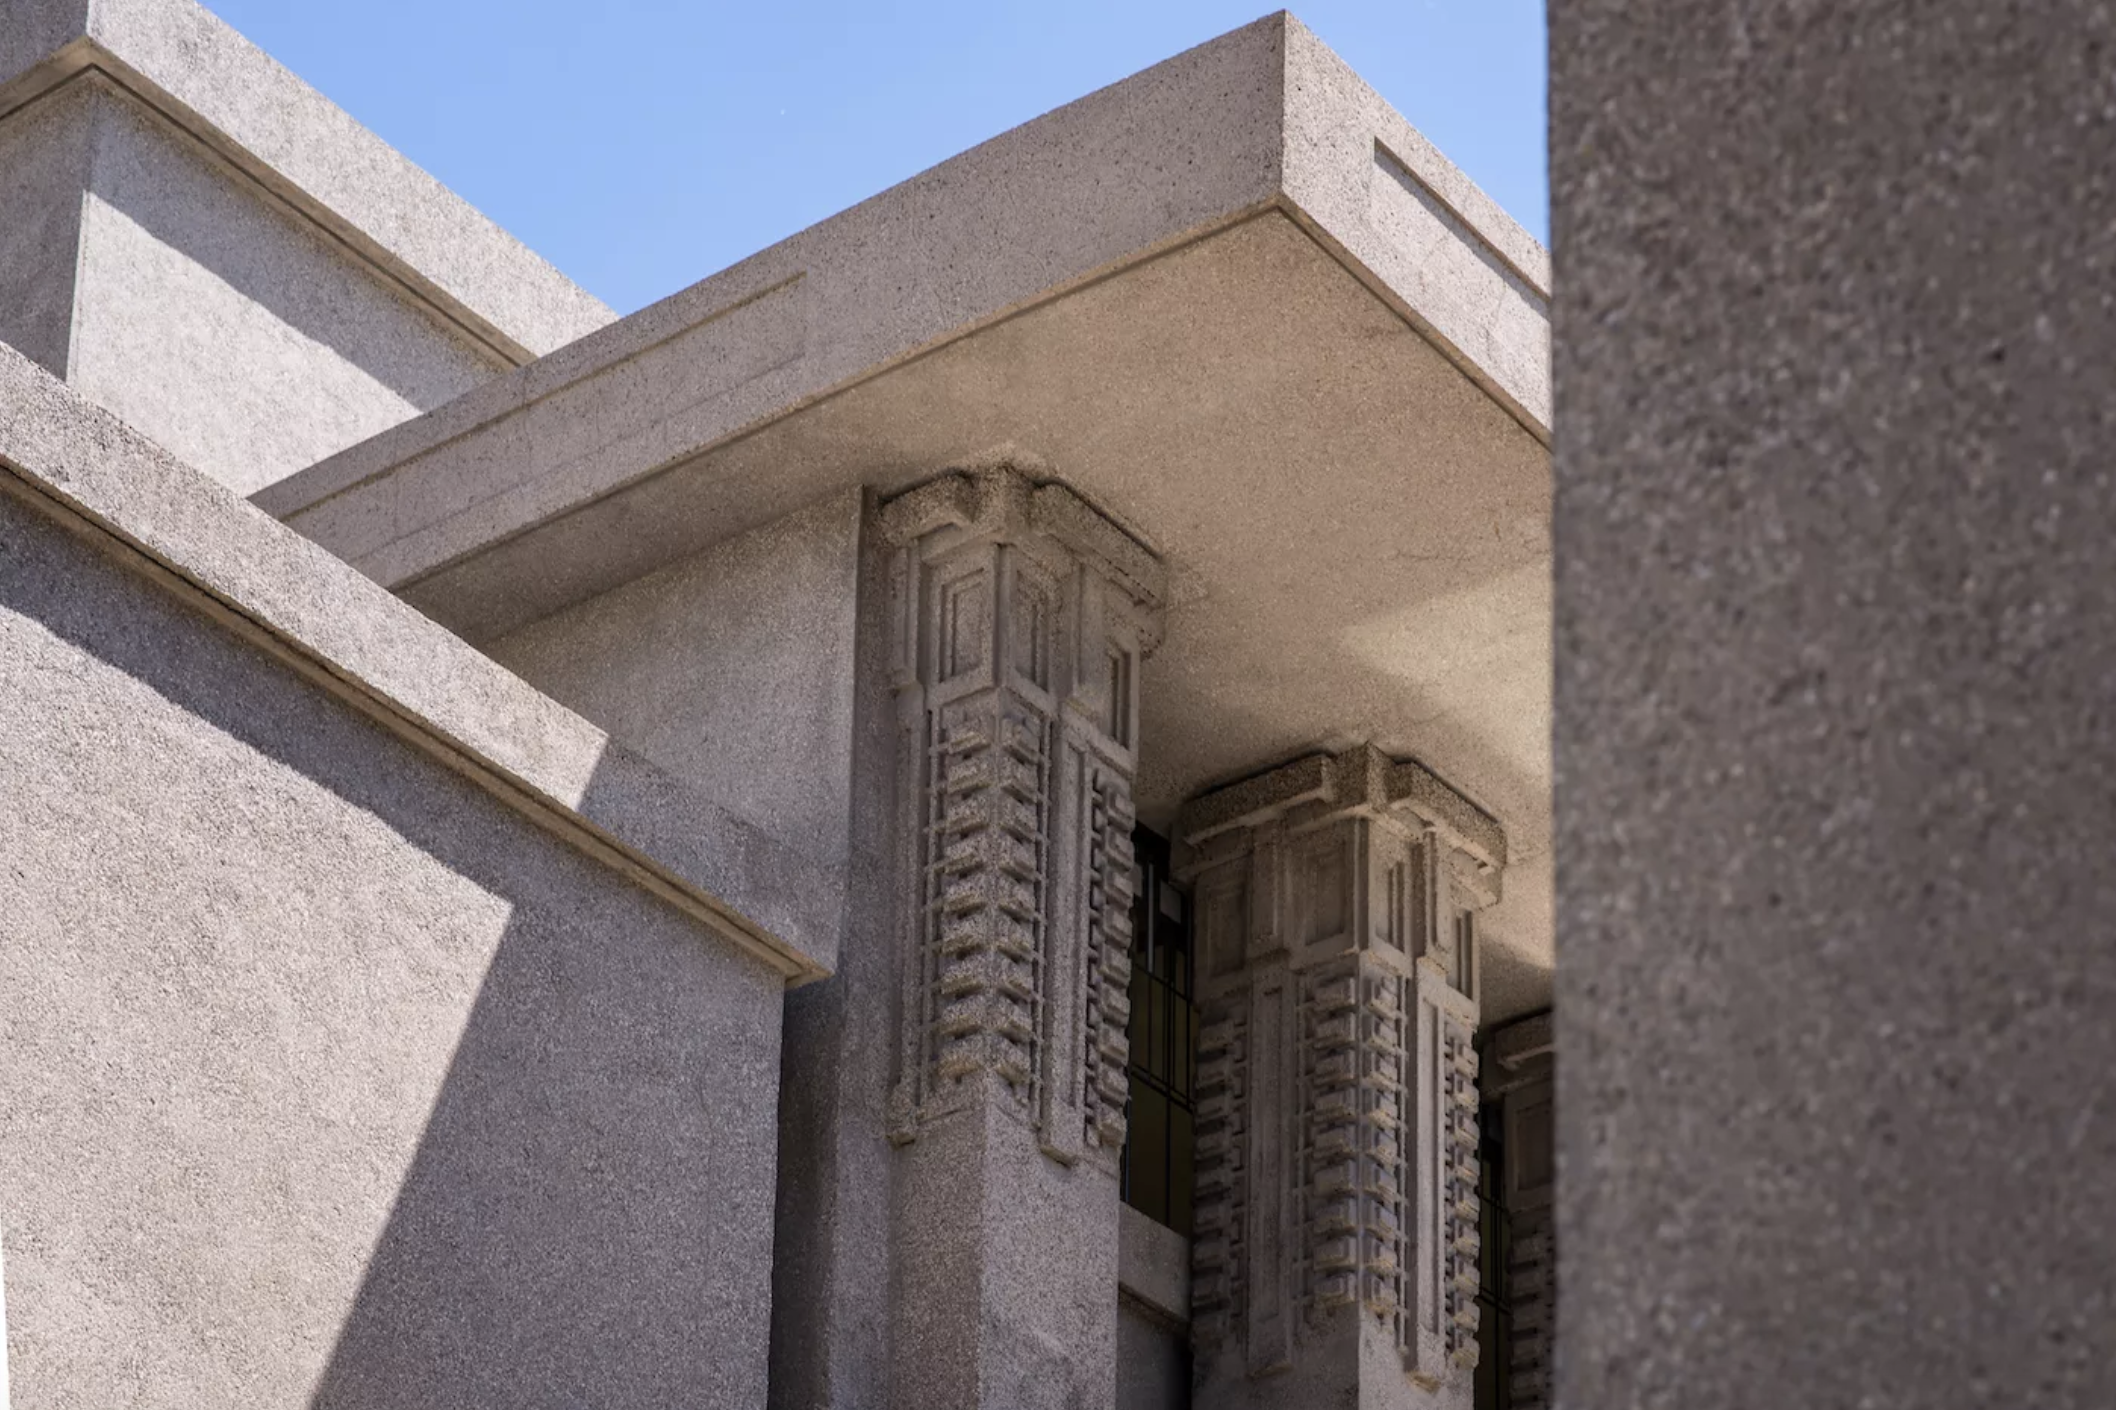 A windowless concrete building with slab sides and minimal ornaments on its columns.